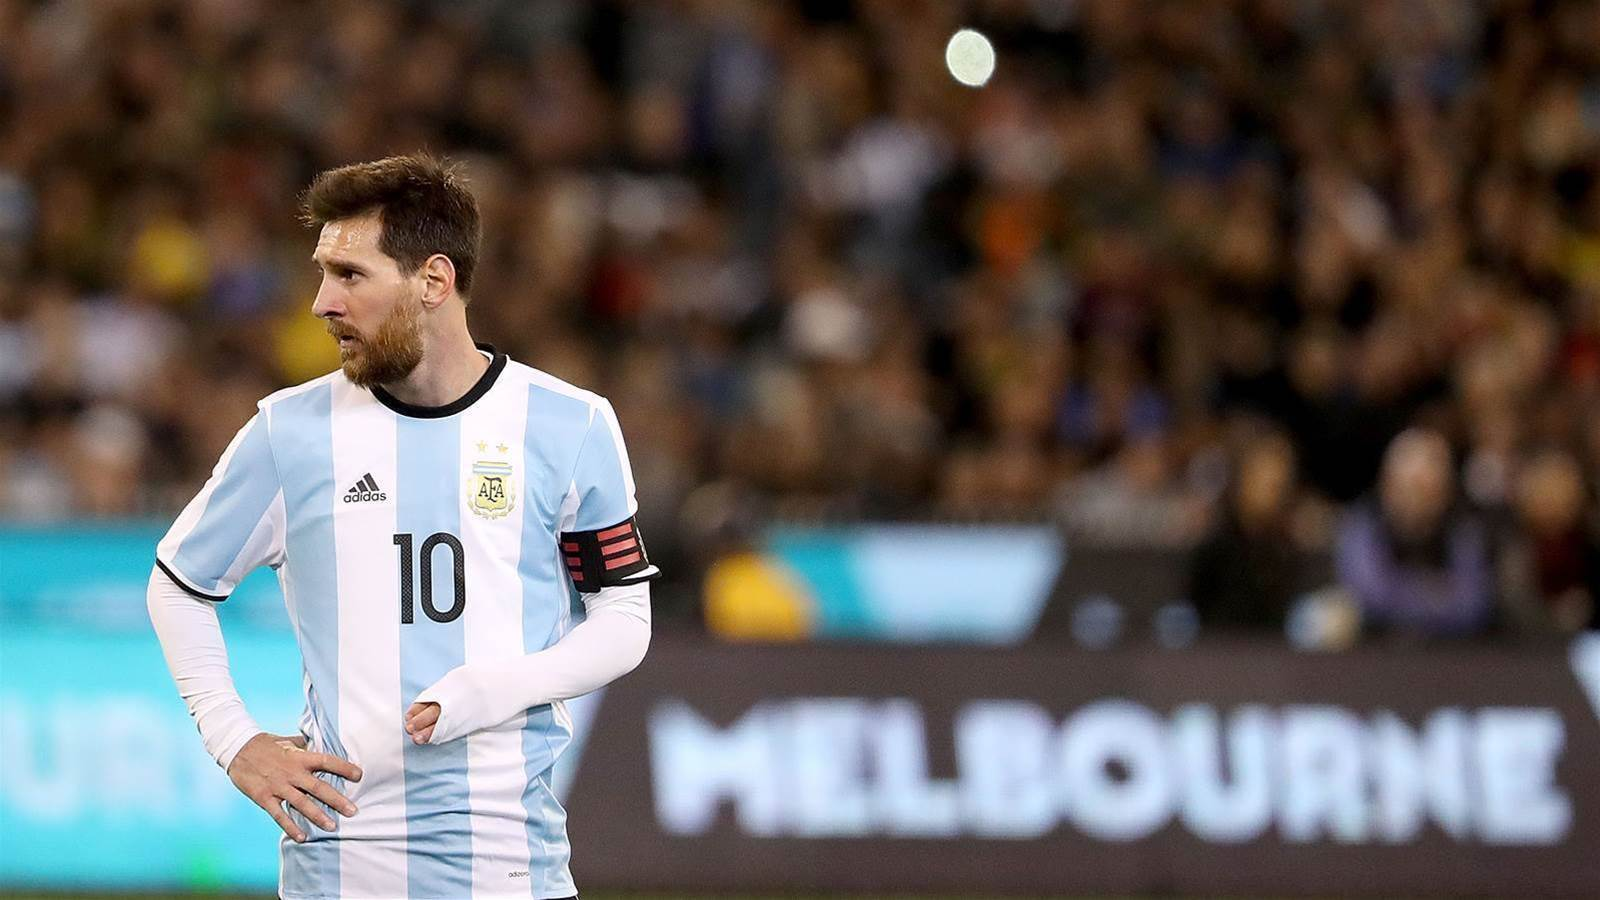 Oz cities miss out on Copa America